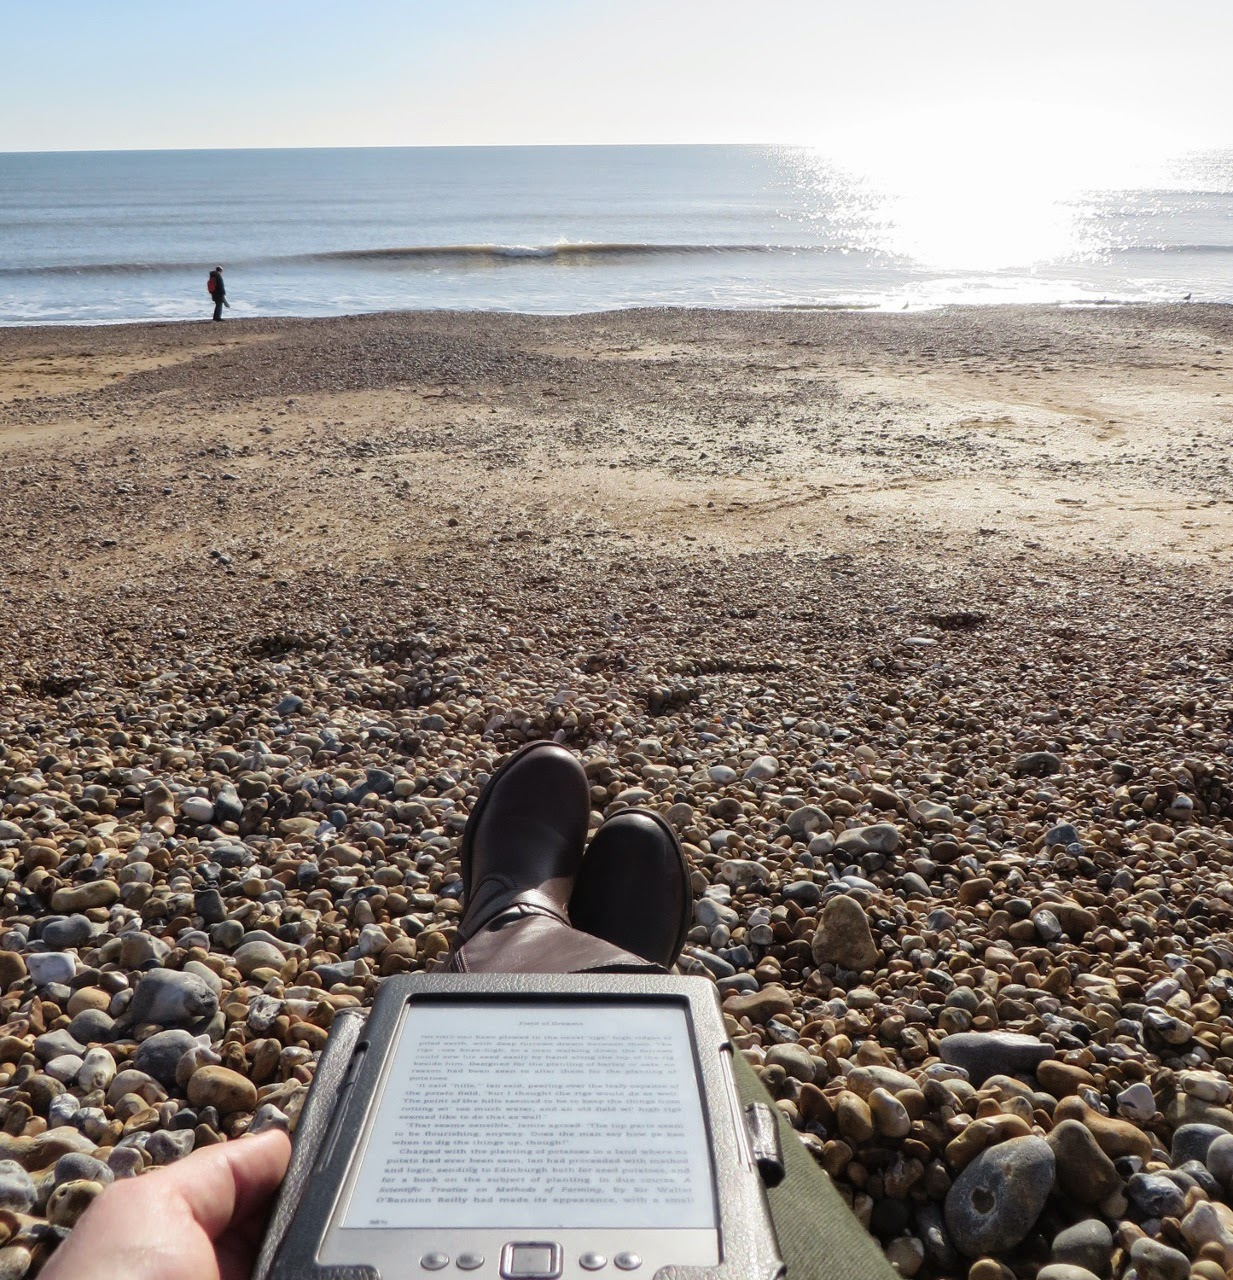 Brighton Beach, Stones, Waterfront, Seashore, Book, Kindle, Winter